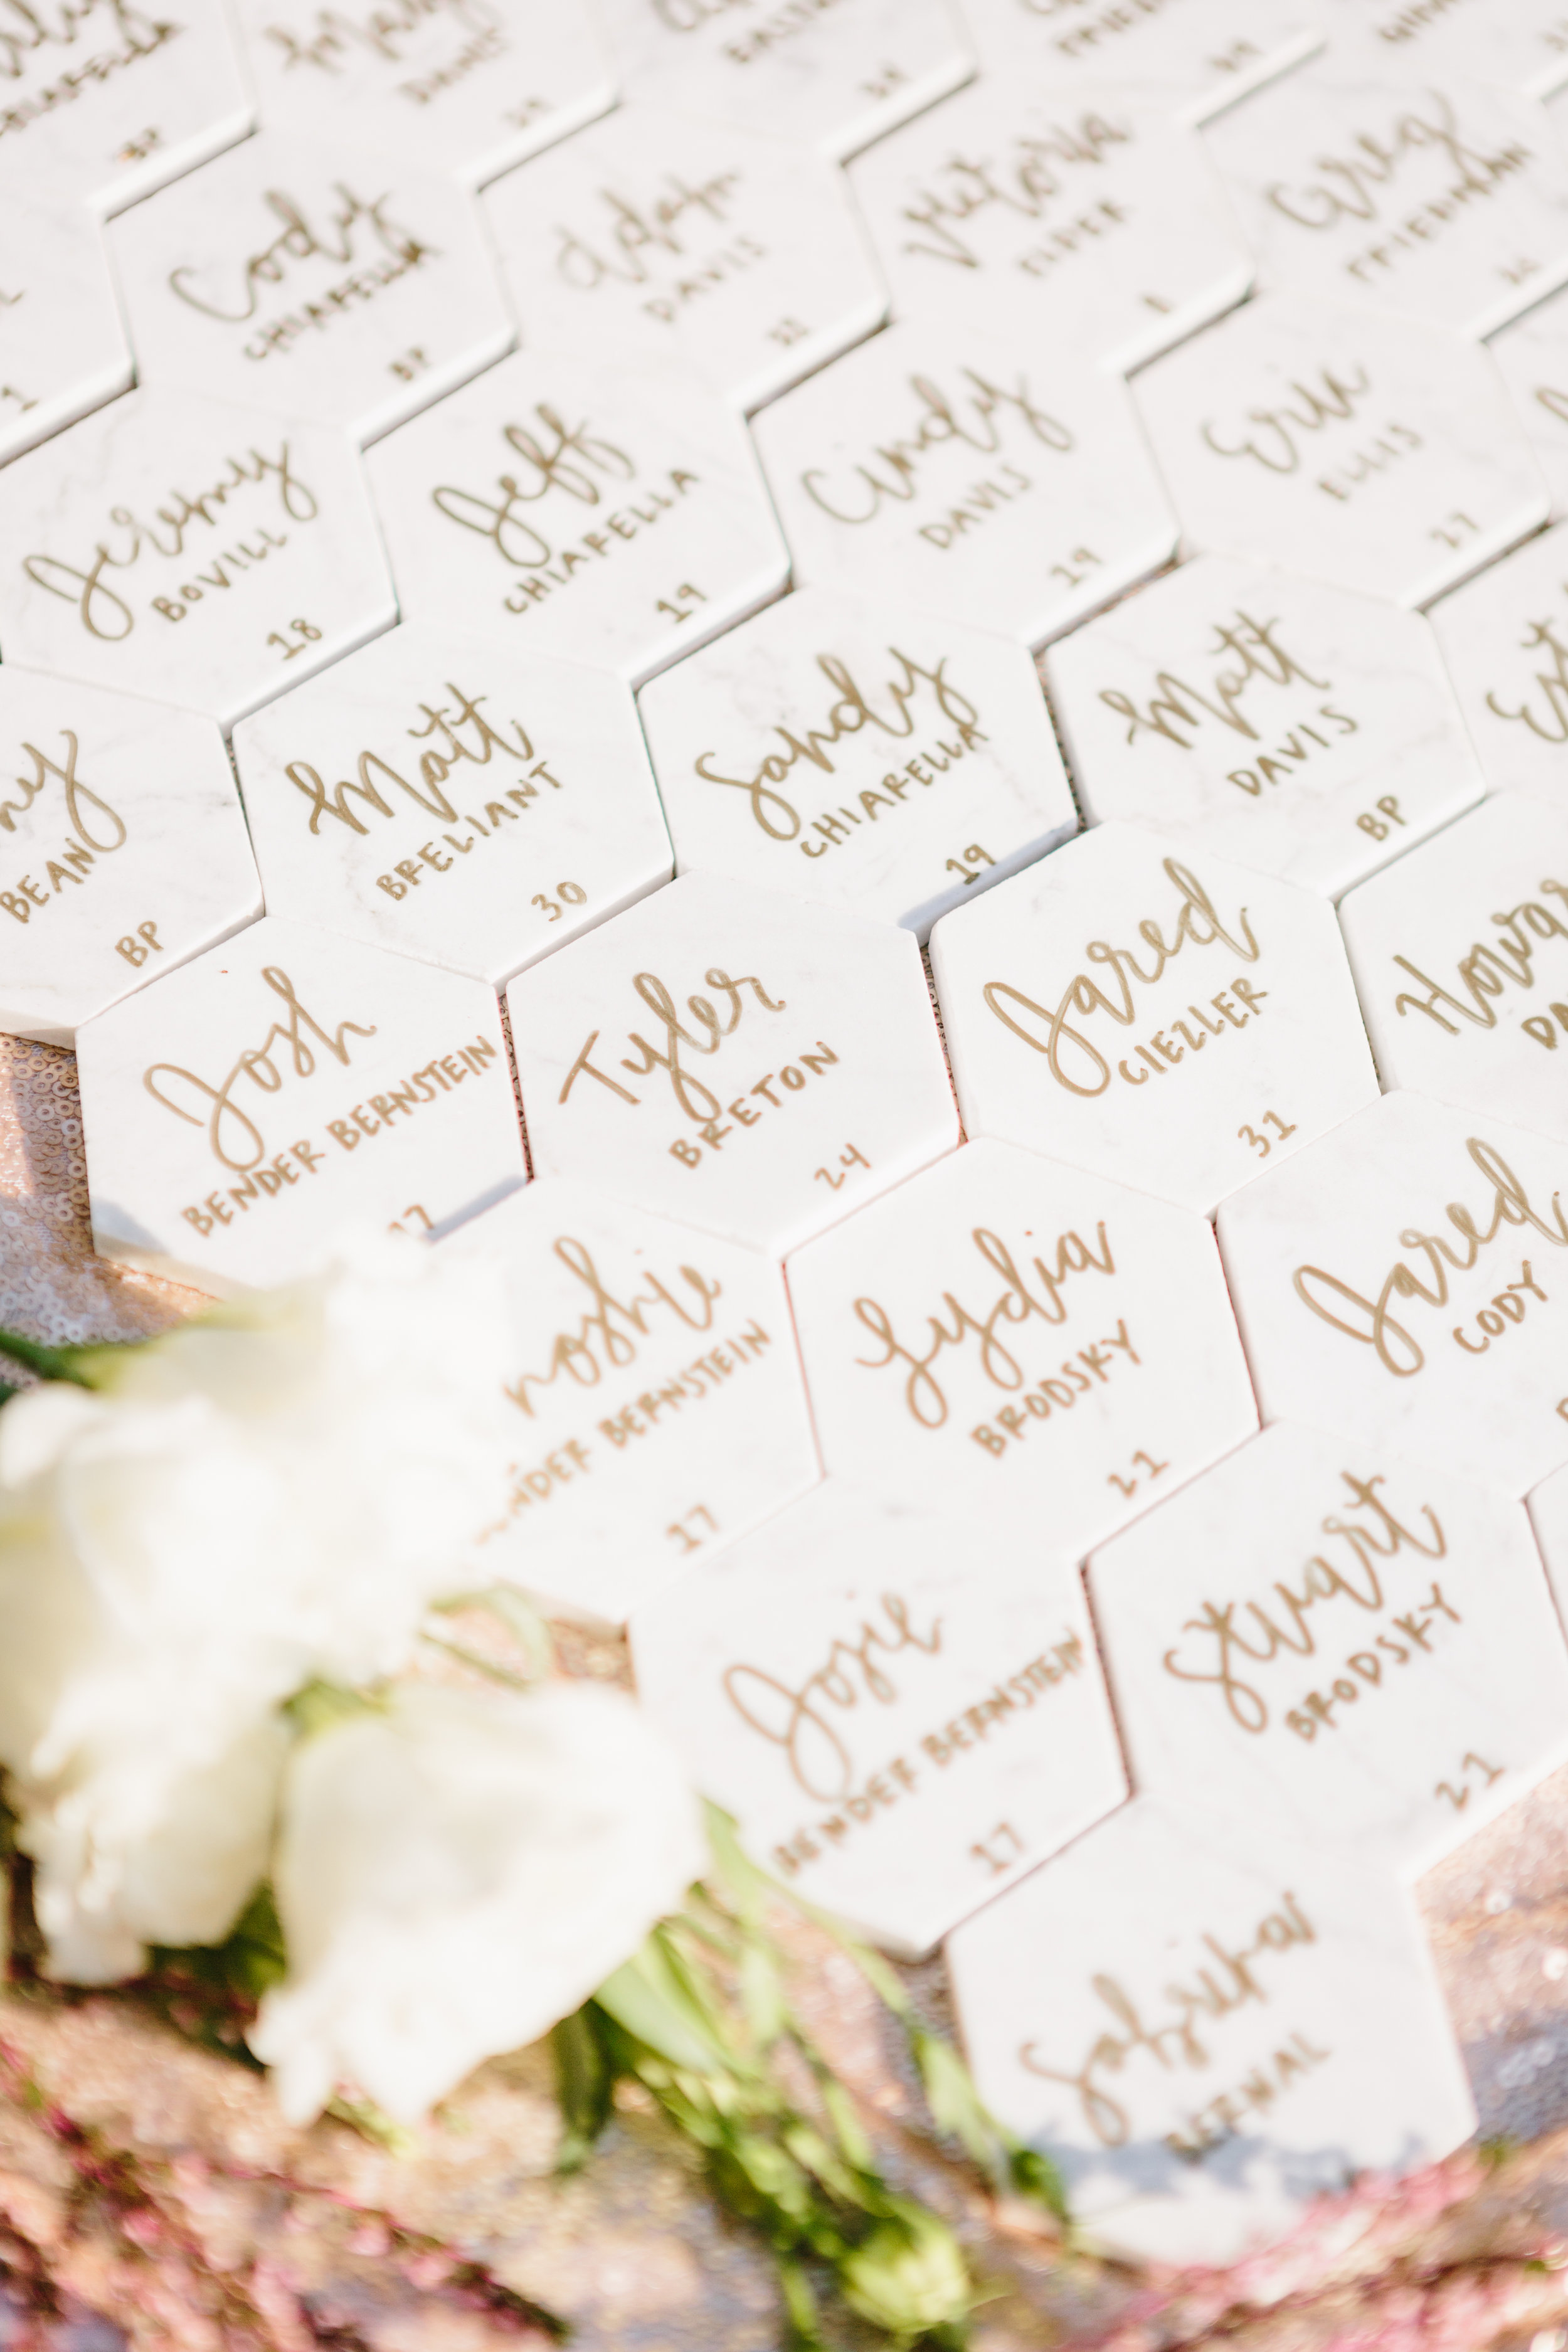 escort tiles Santa Barbara Destination Wedding Planner Designer Orchard Farm